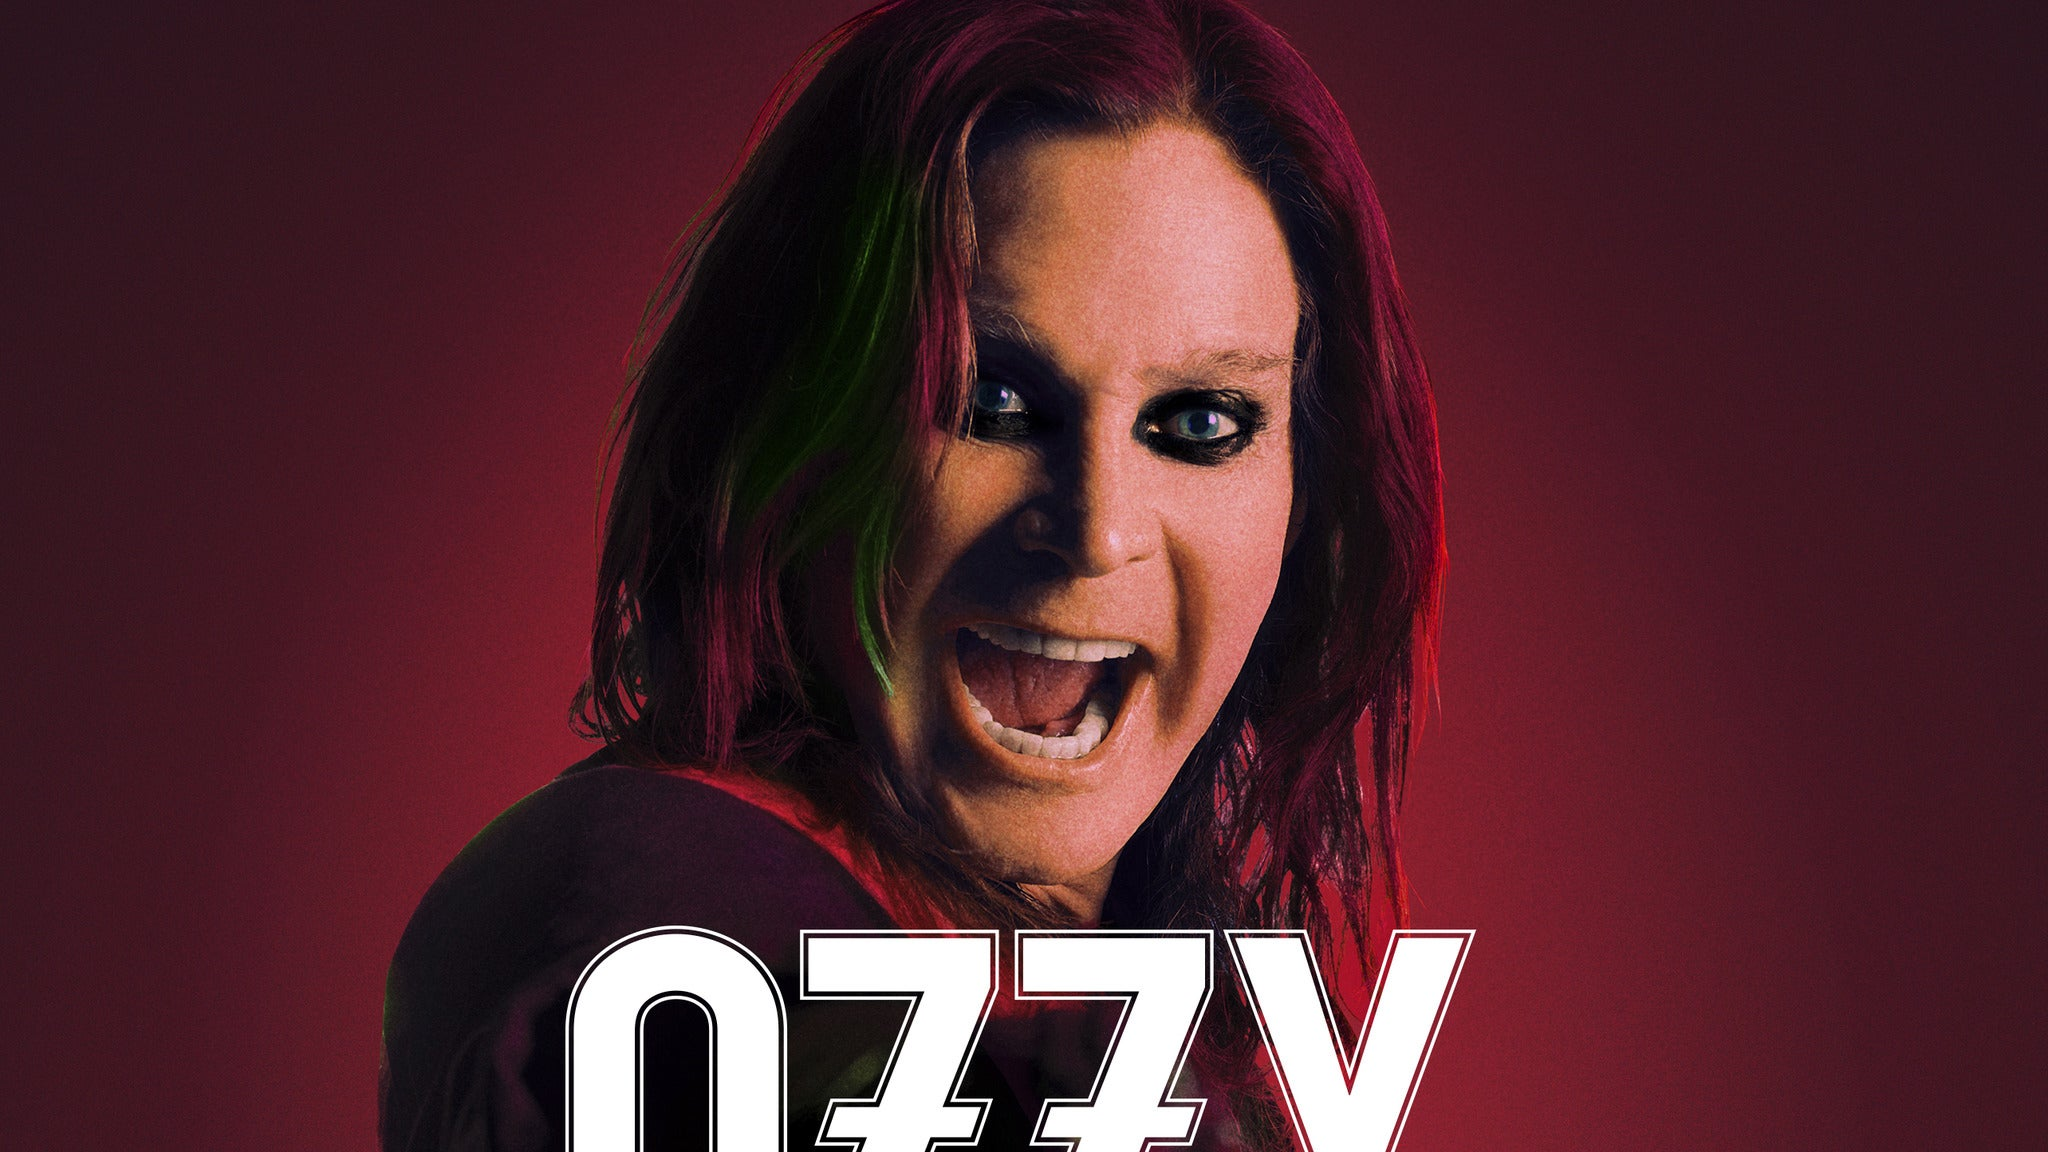 Ozzy Osbourne: No More Tours 2 at Hollywood Bowl